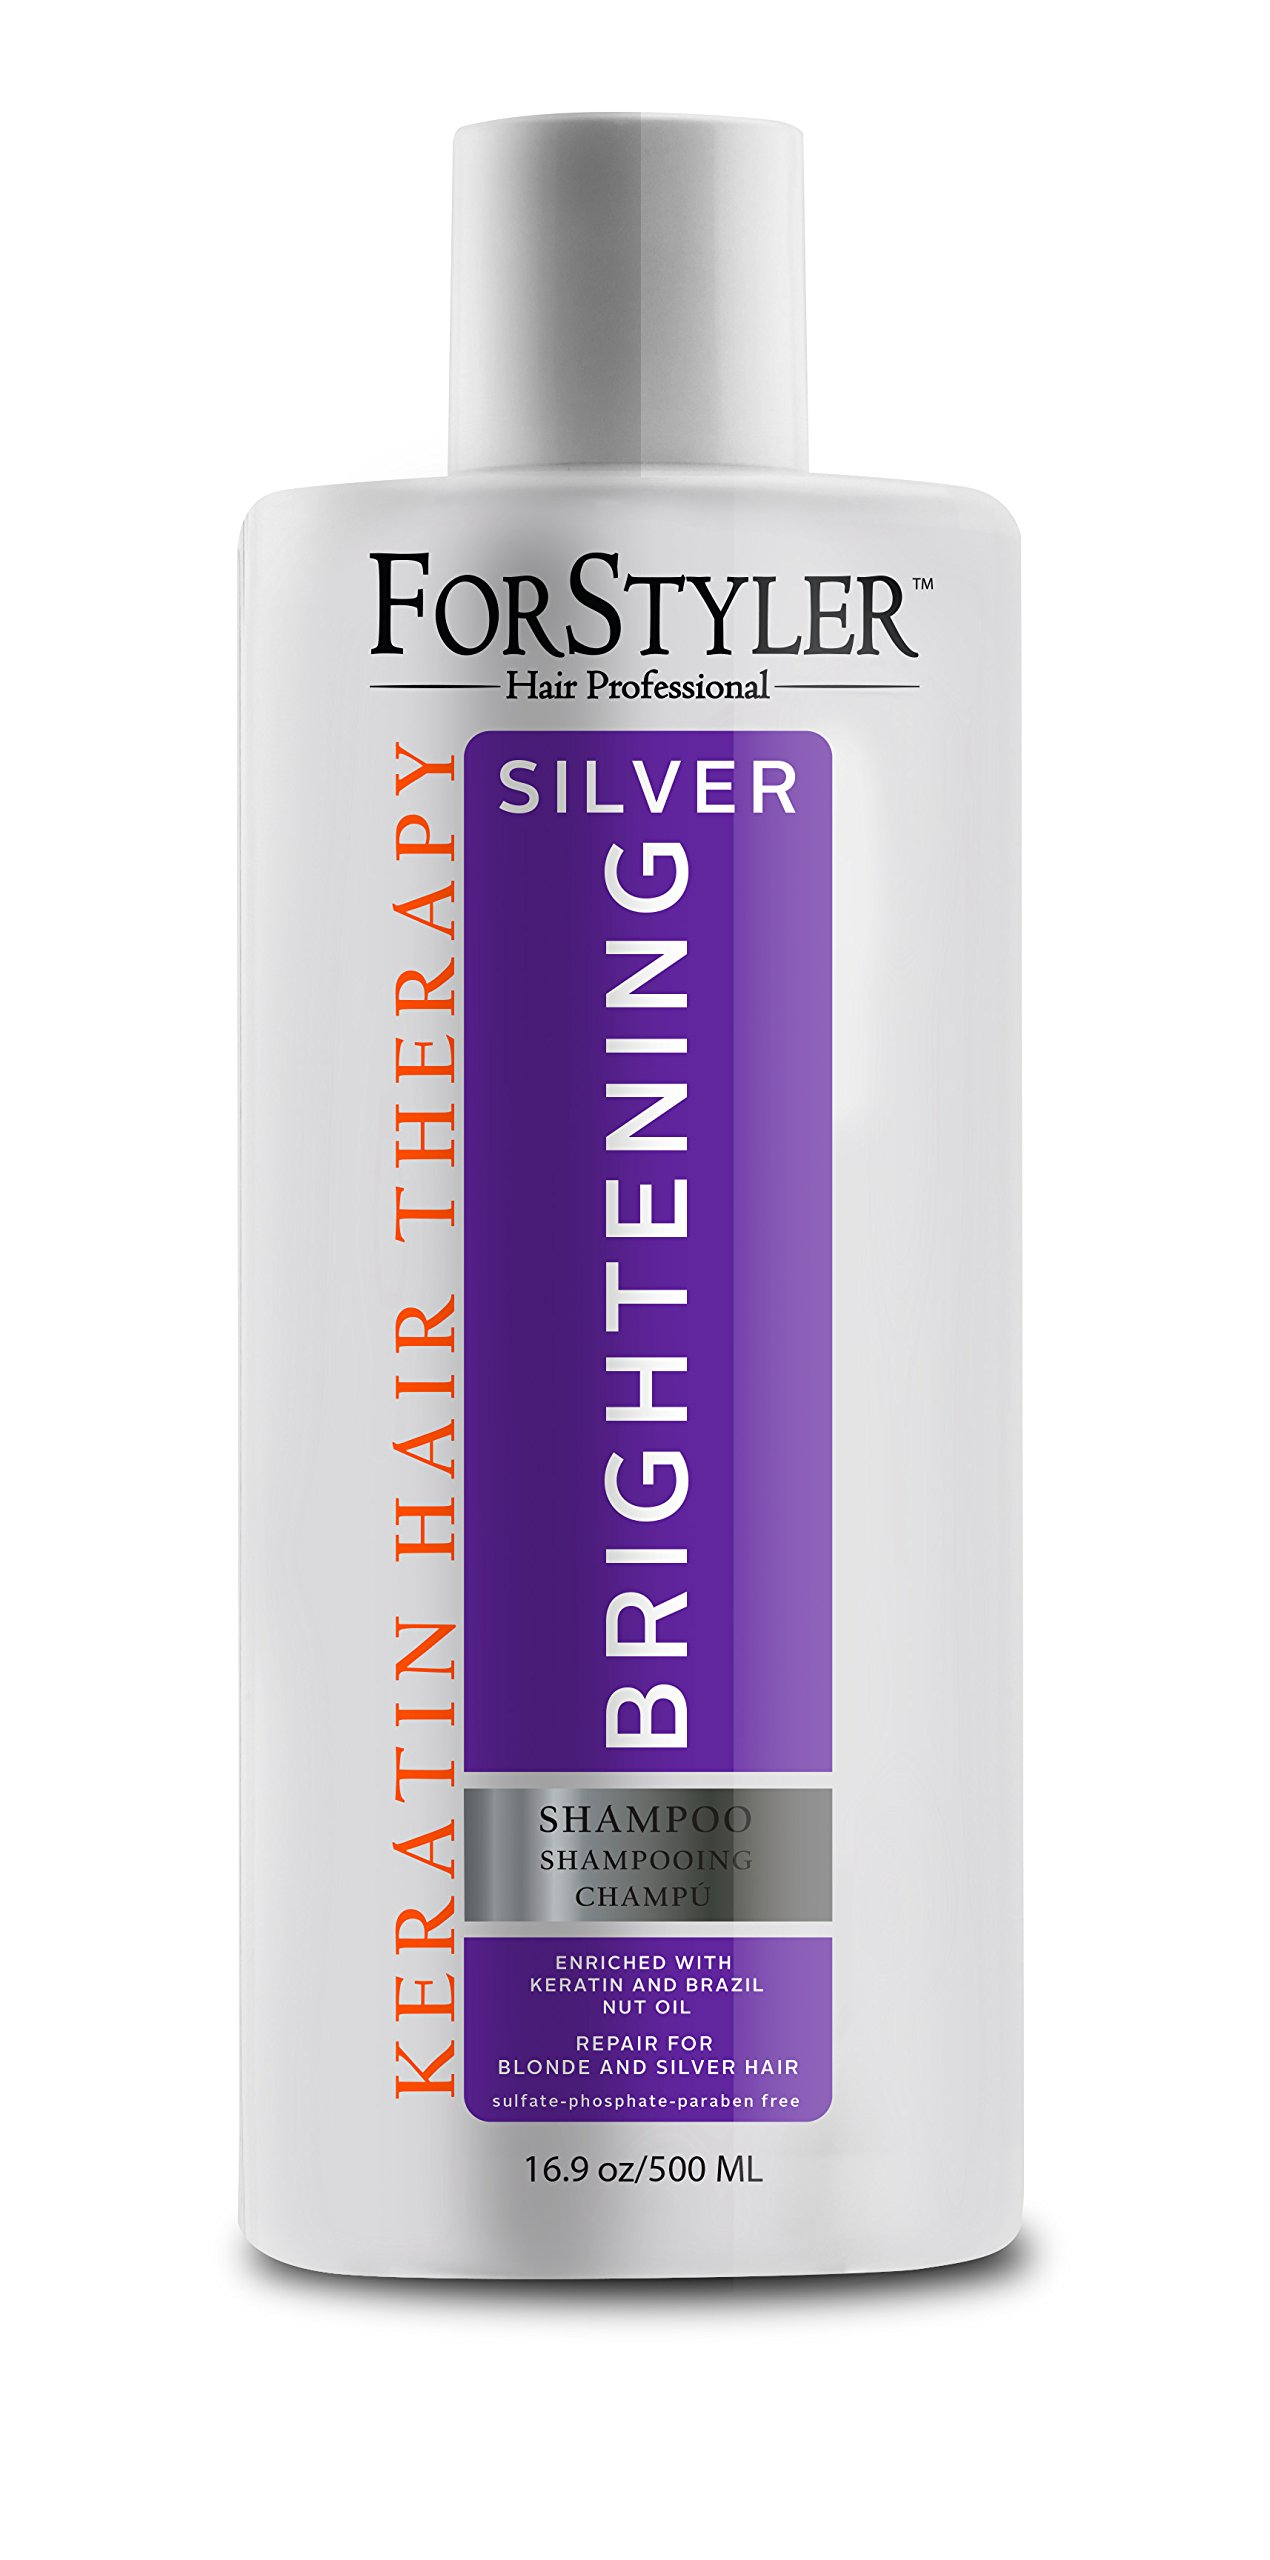 ForStyler- Silver Brightening Shampoo, repair for Blonde and Silver Hair 16.9oz/500ml